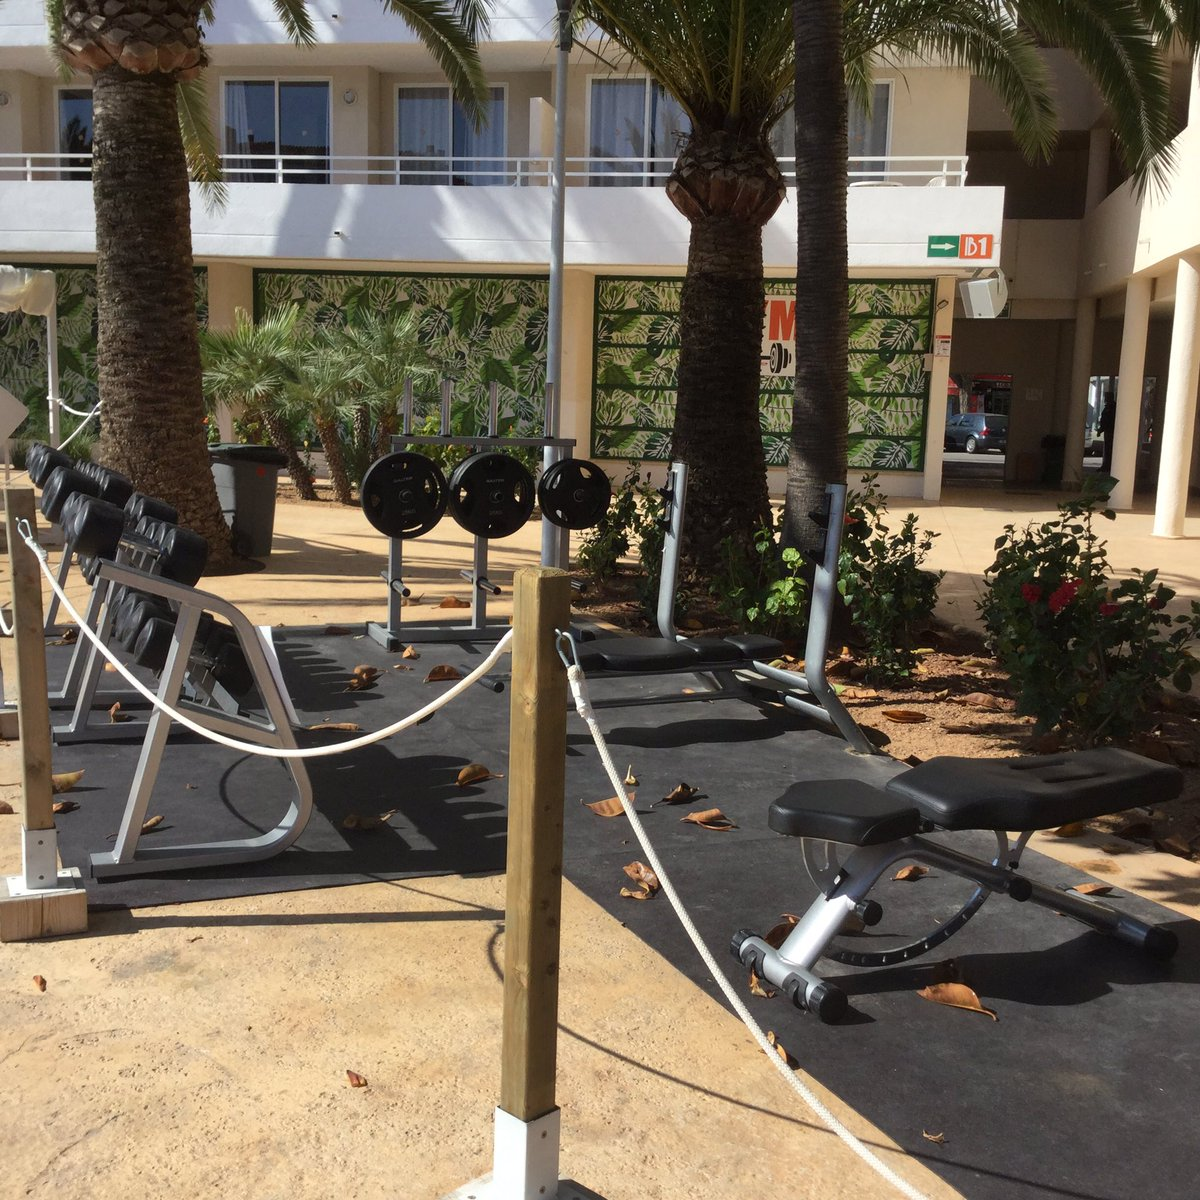 Bh Mallorca On Twitter Our Outside Gym For The Ones Who Wants